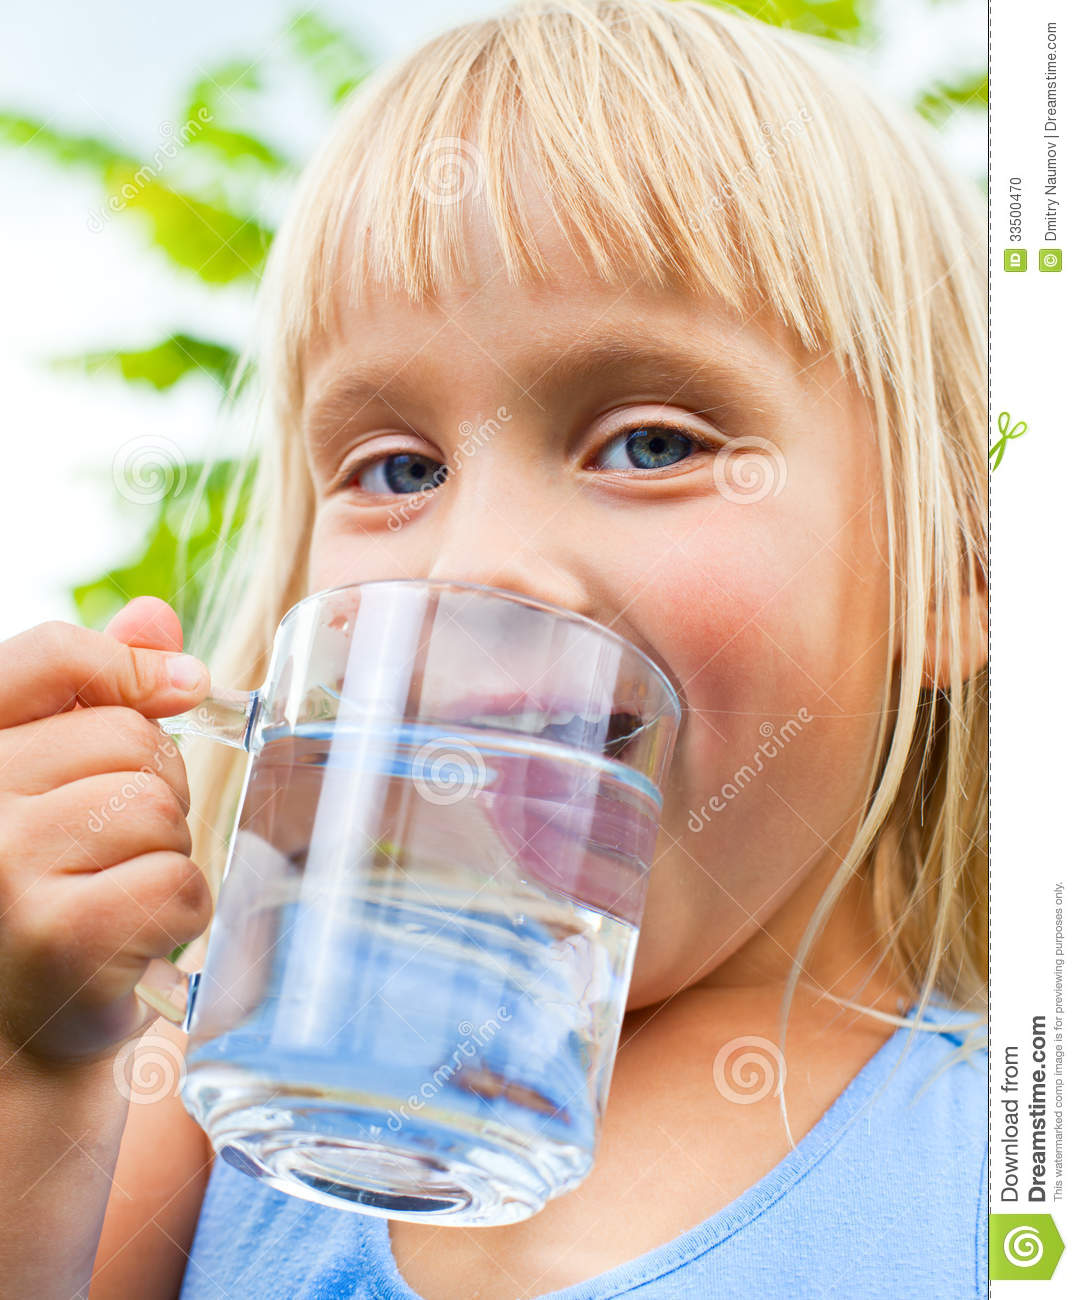 Clipart Child Drinking Water